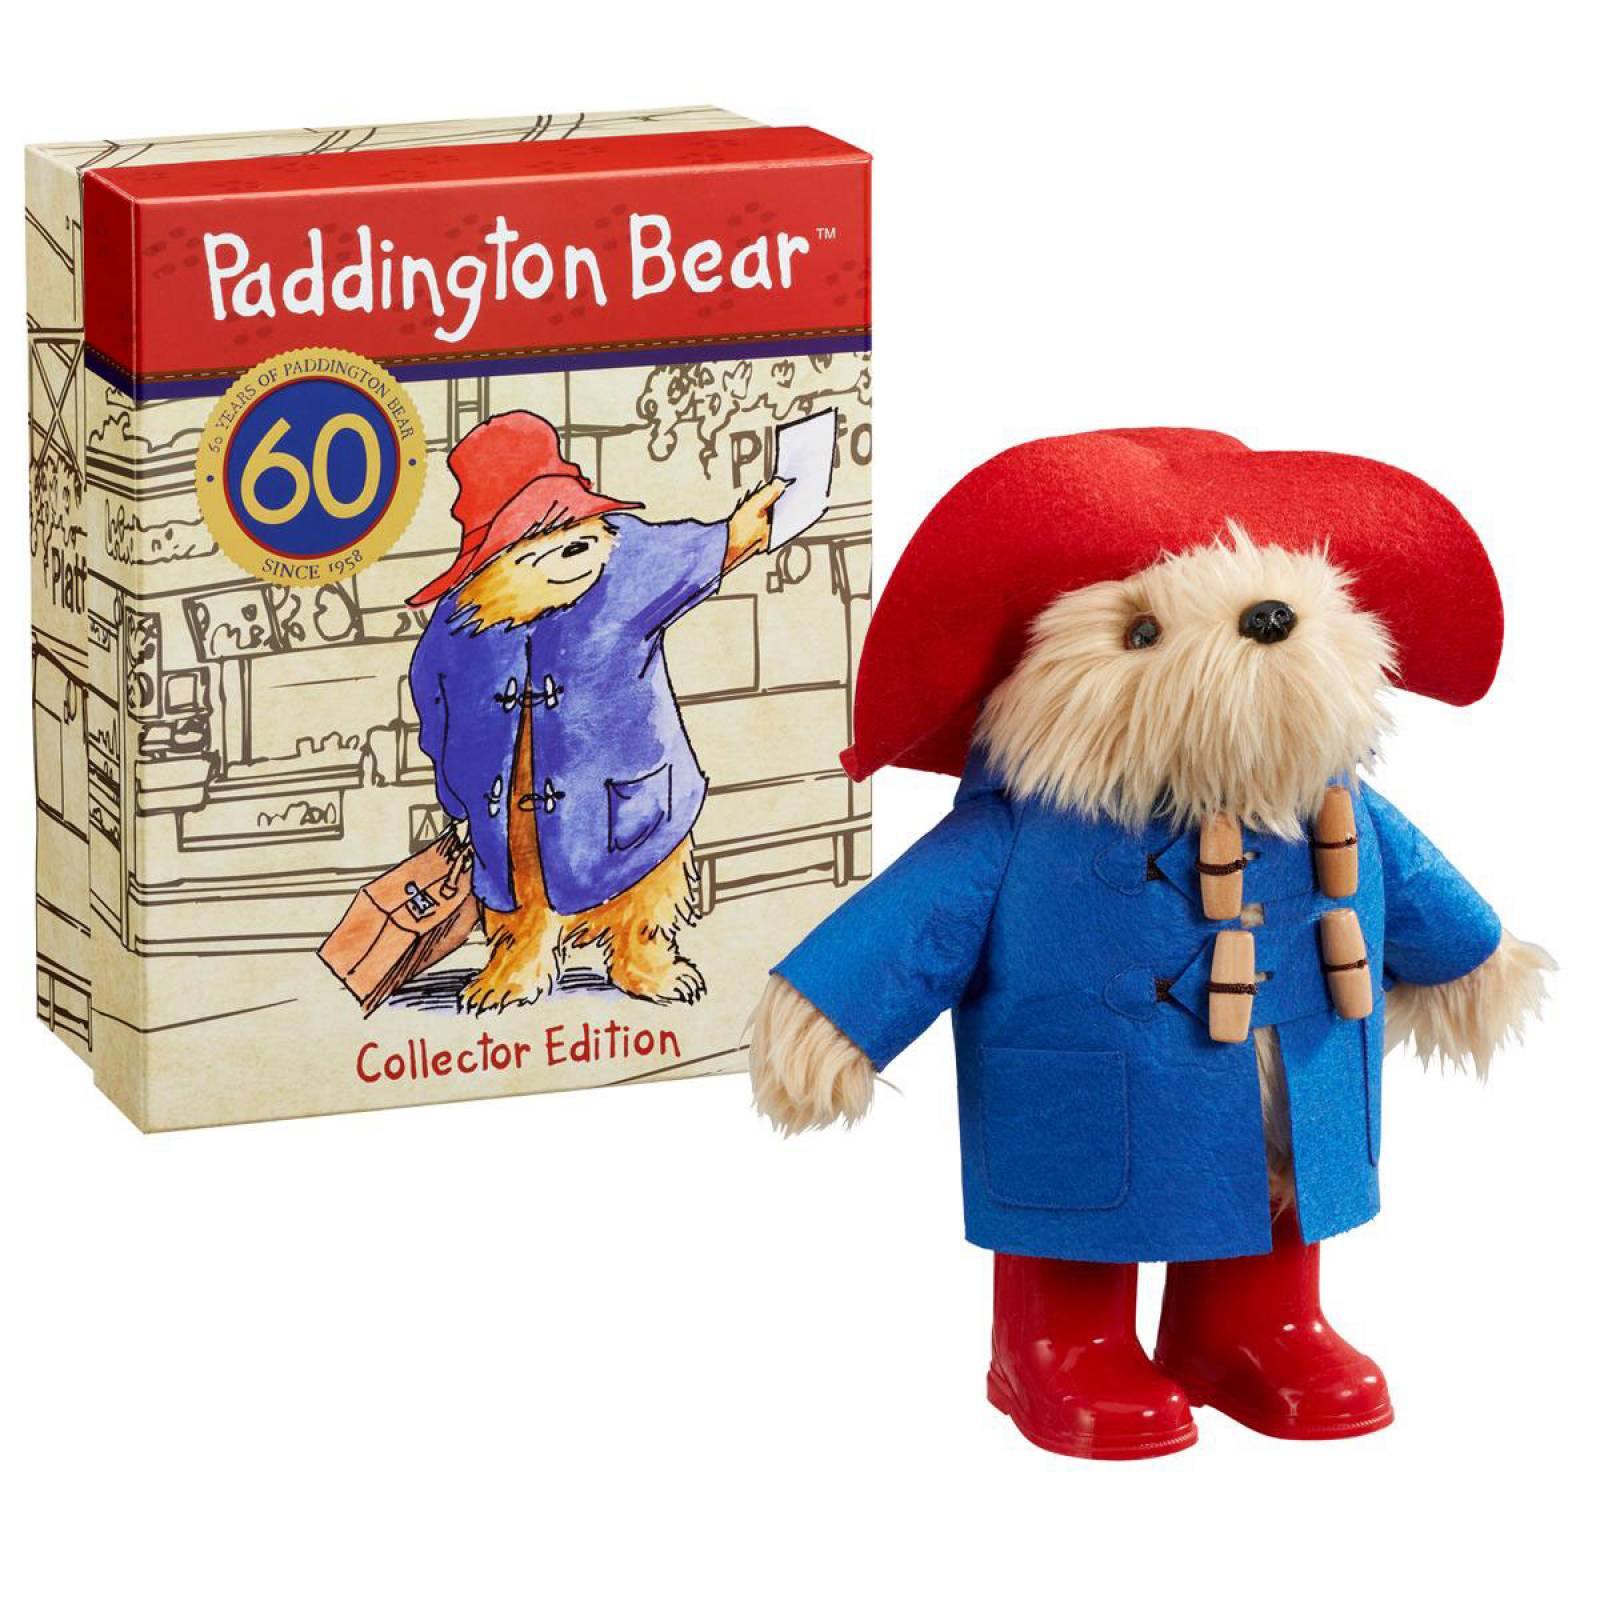 Paddington Soft Toy In Collectors 60th Anniversary Box thumbnails